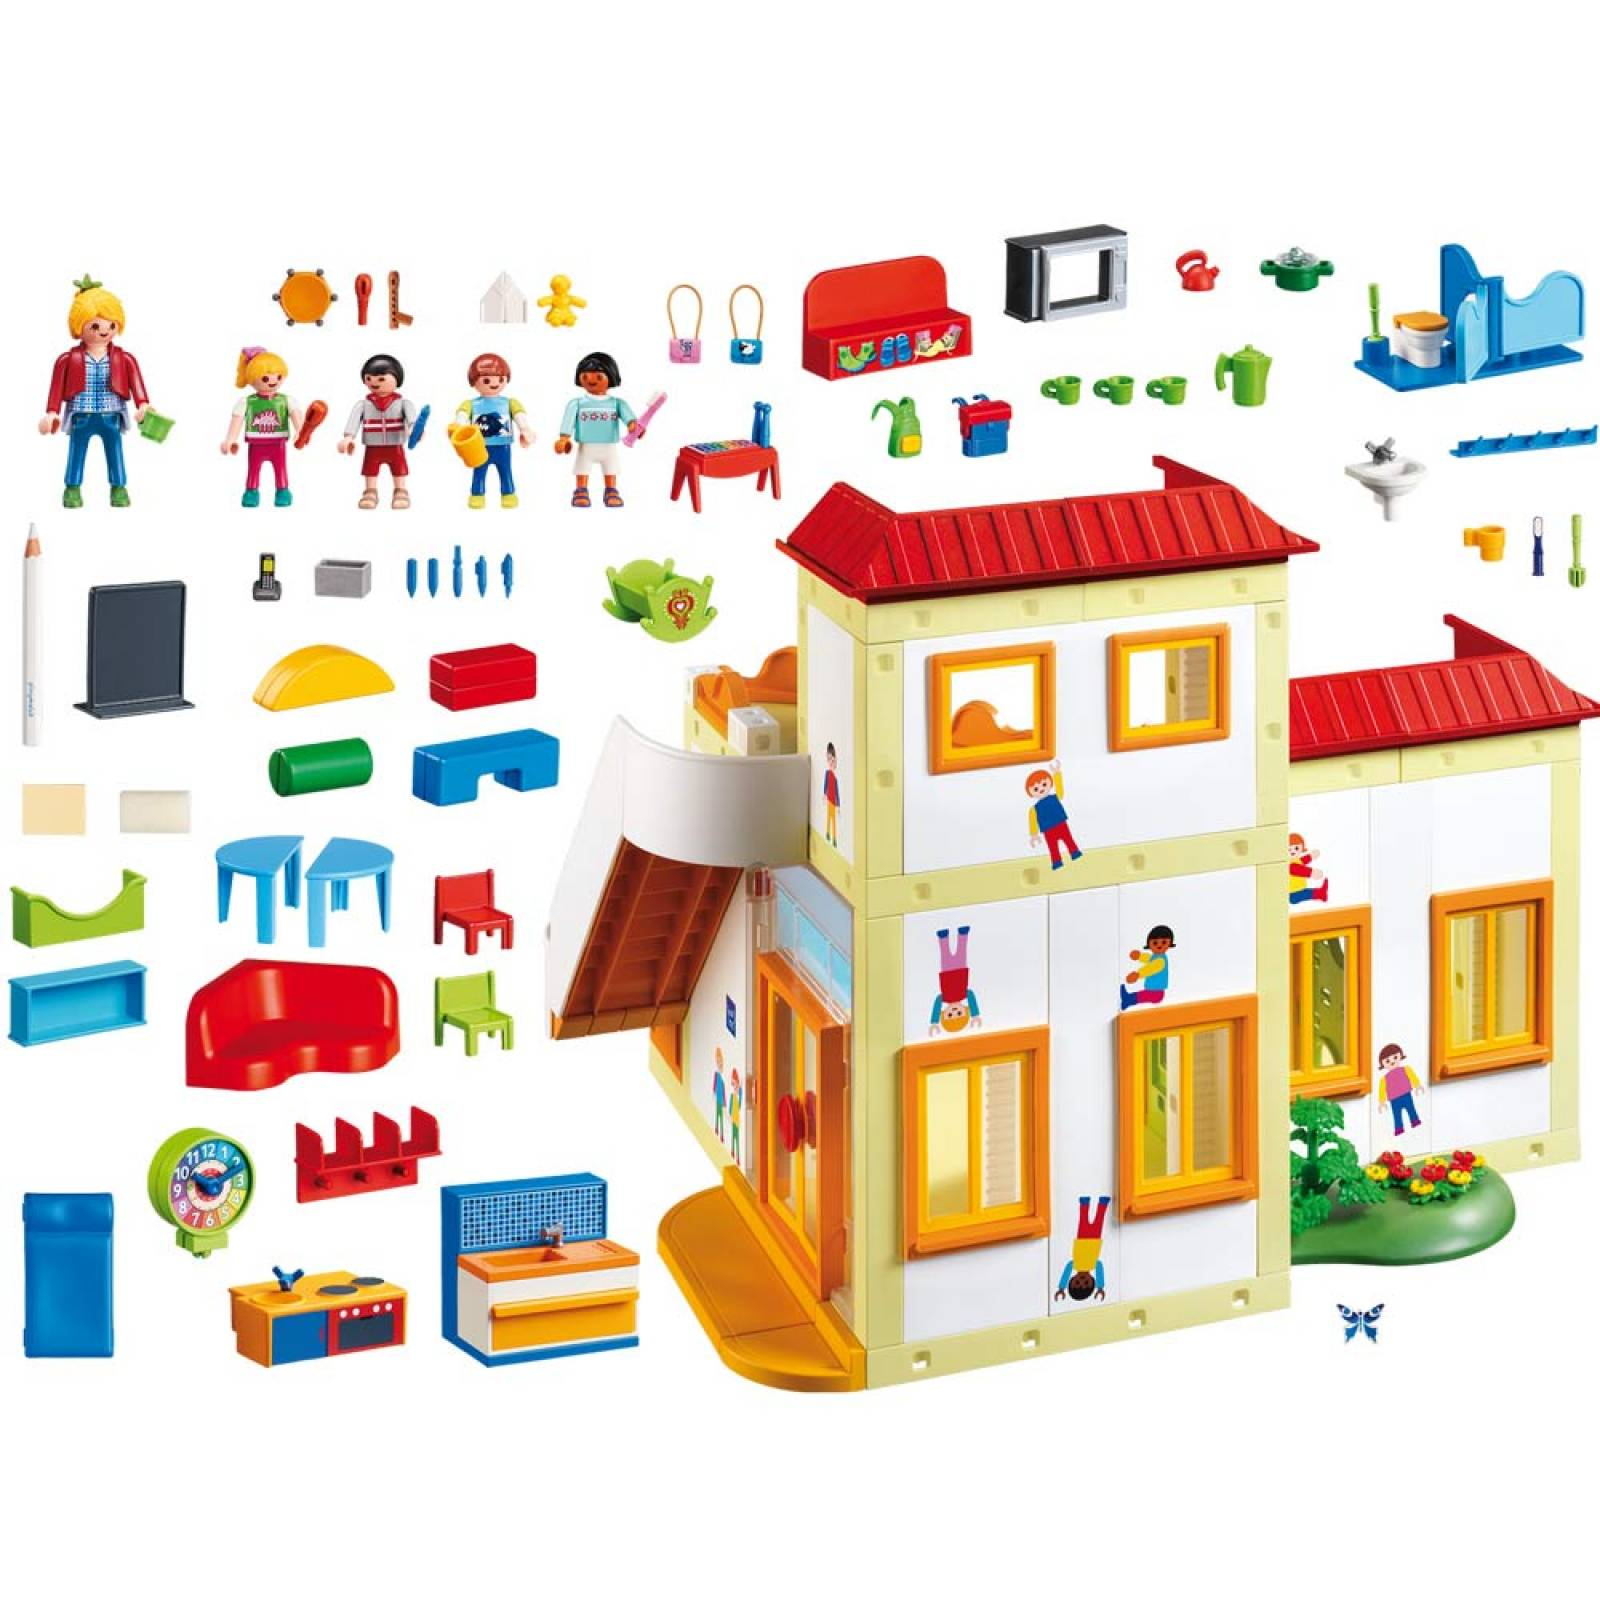 Playmobil Sunshine Preschool City Life 5567 Age 4+ thumbnails